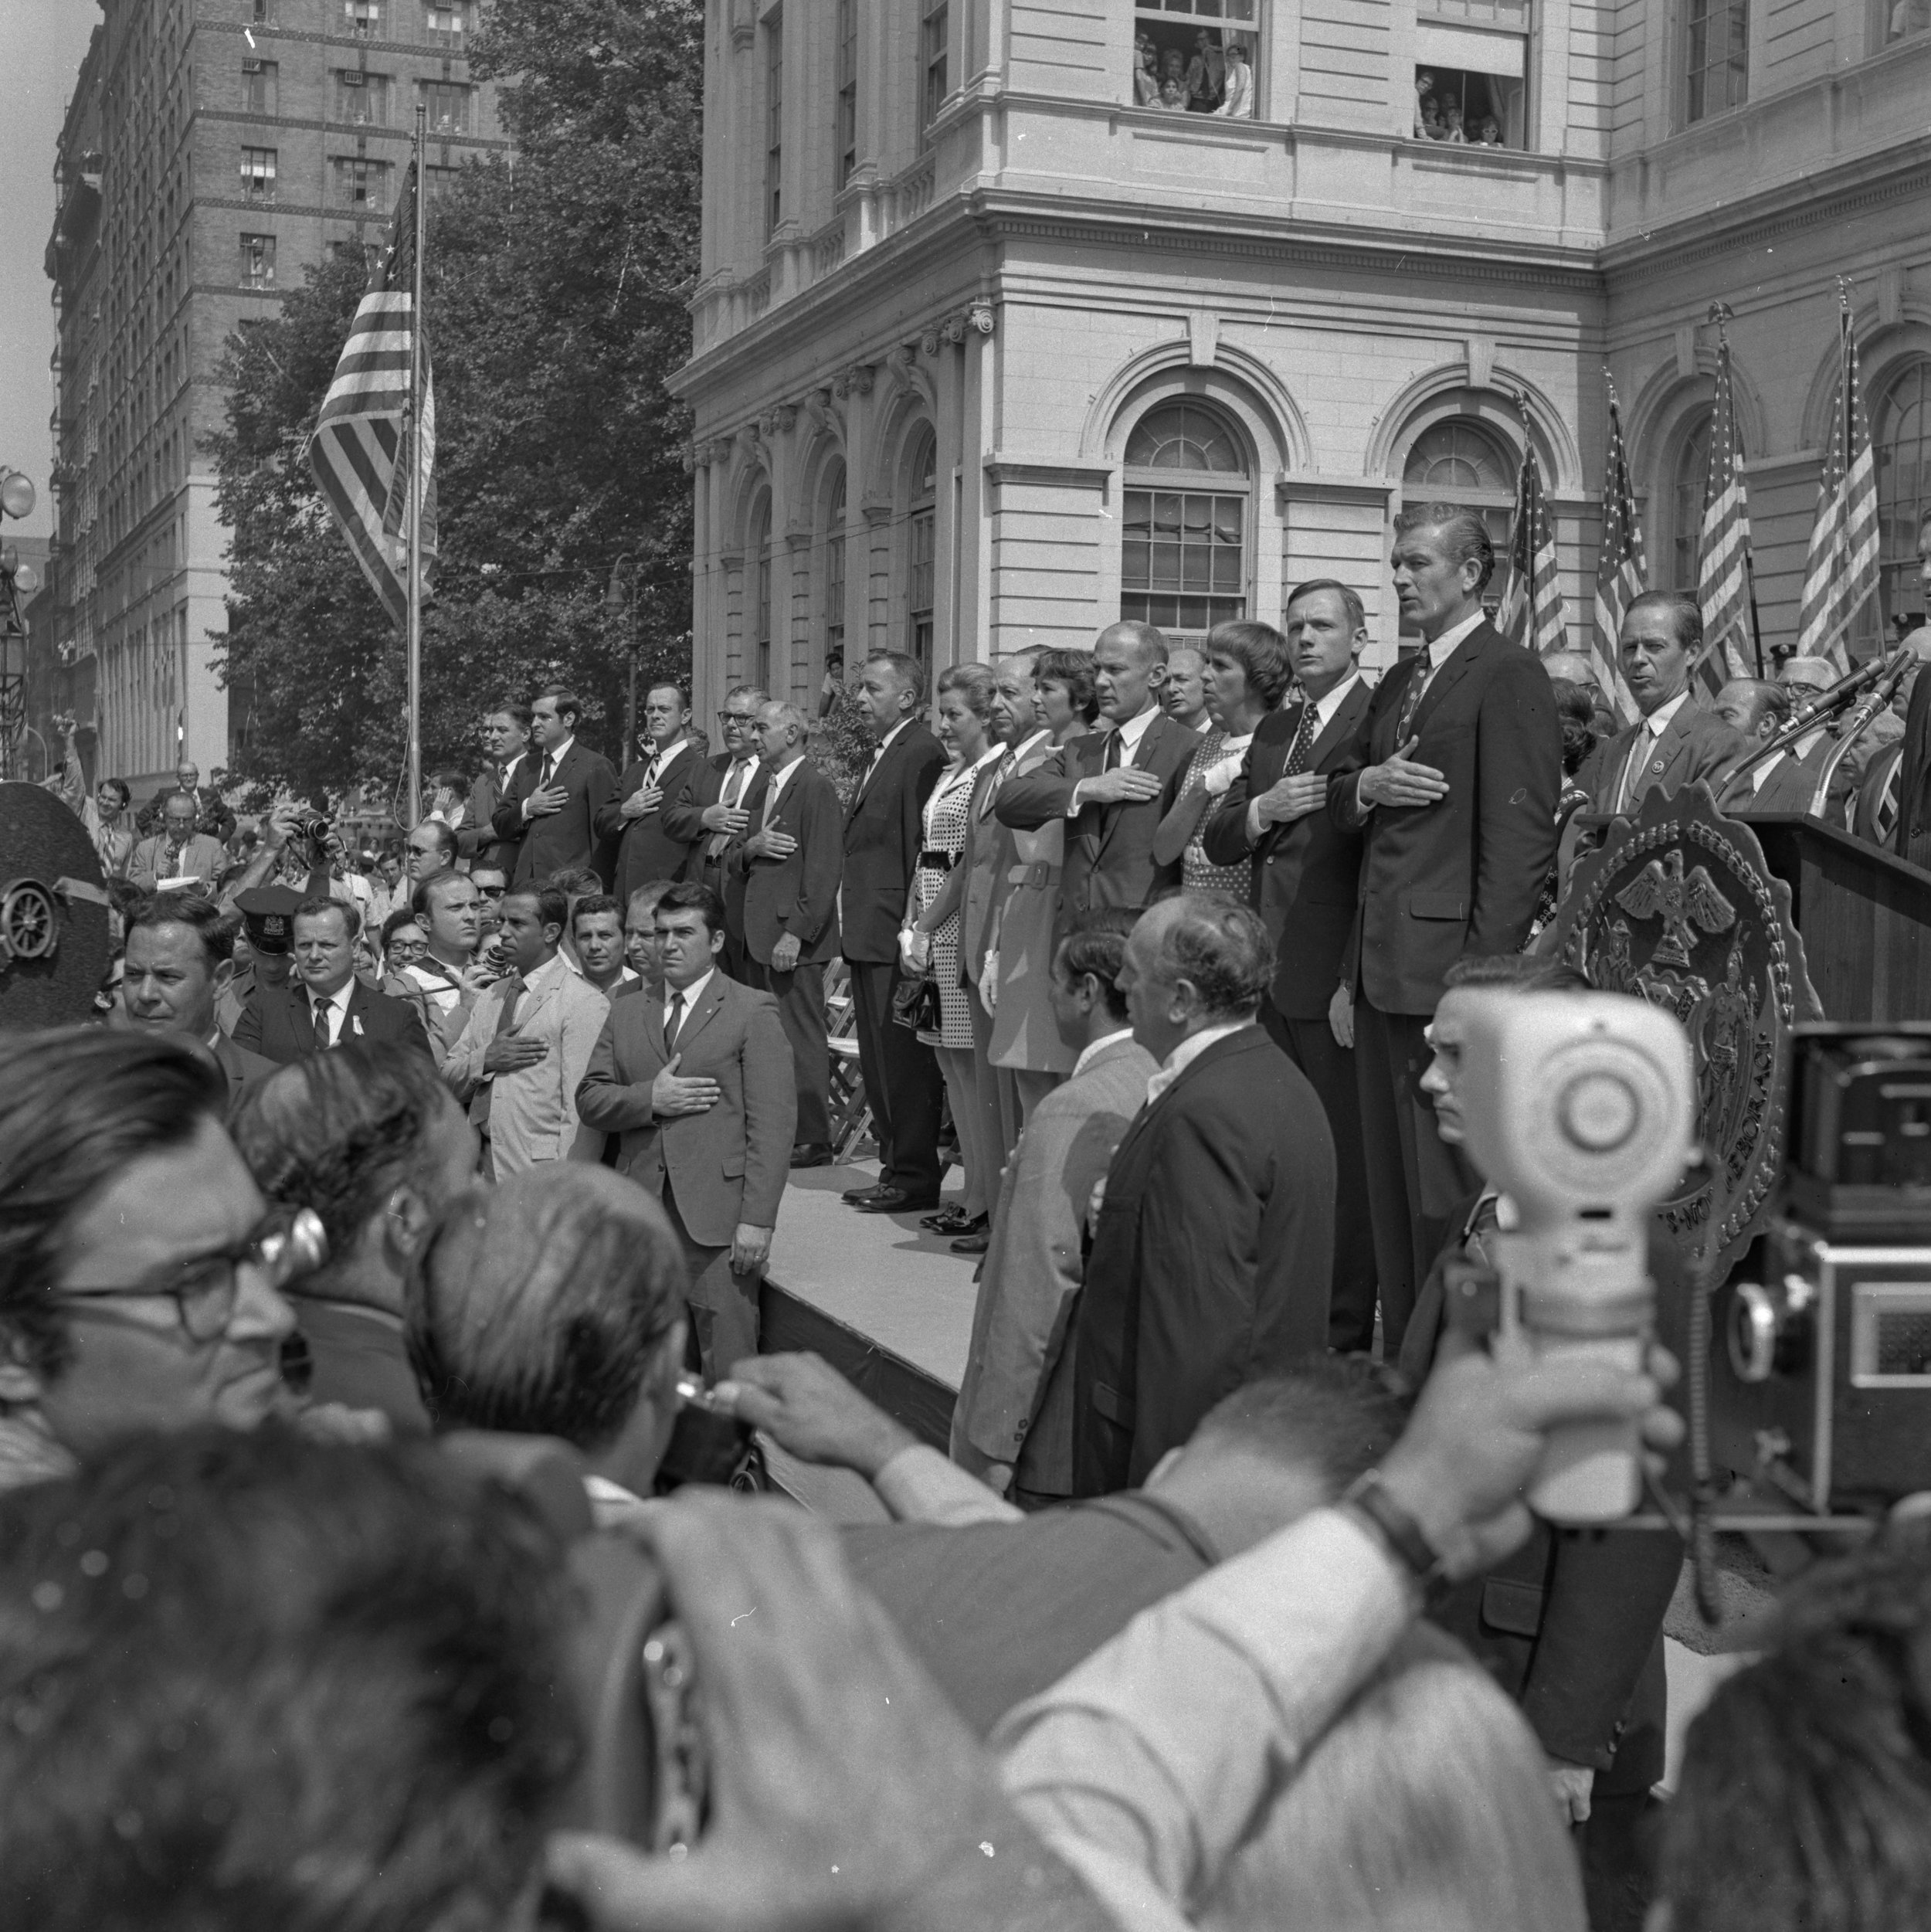 City officials, Apollo 11 Astronauts, and their families recite the pledge of allegiance on the steps of City Hall, August 13, 1969. NYPD Collection, NYC Municipal Archives.